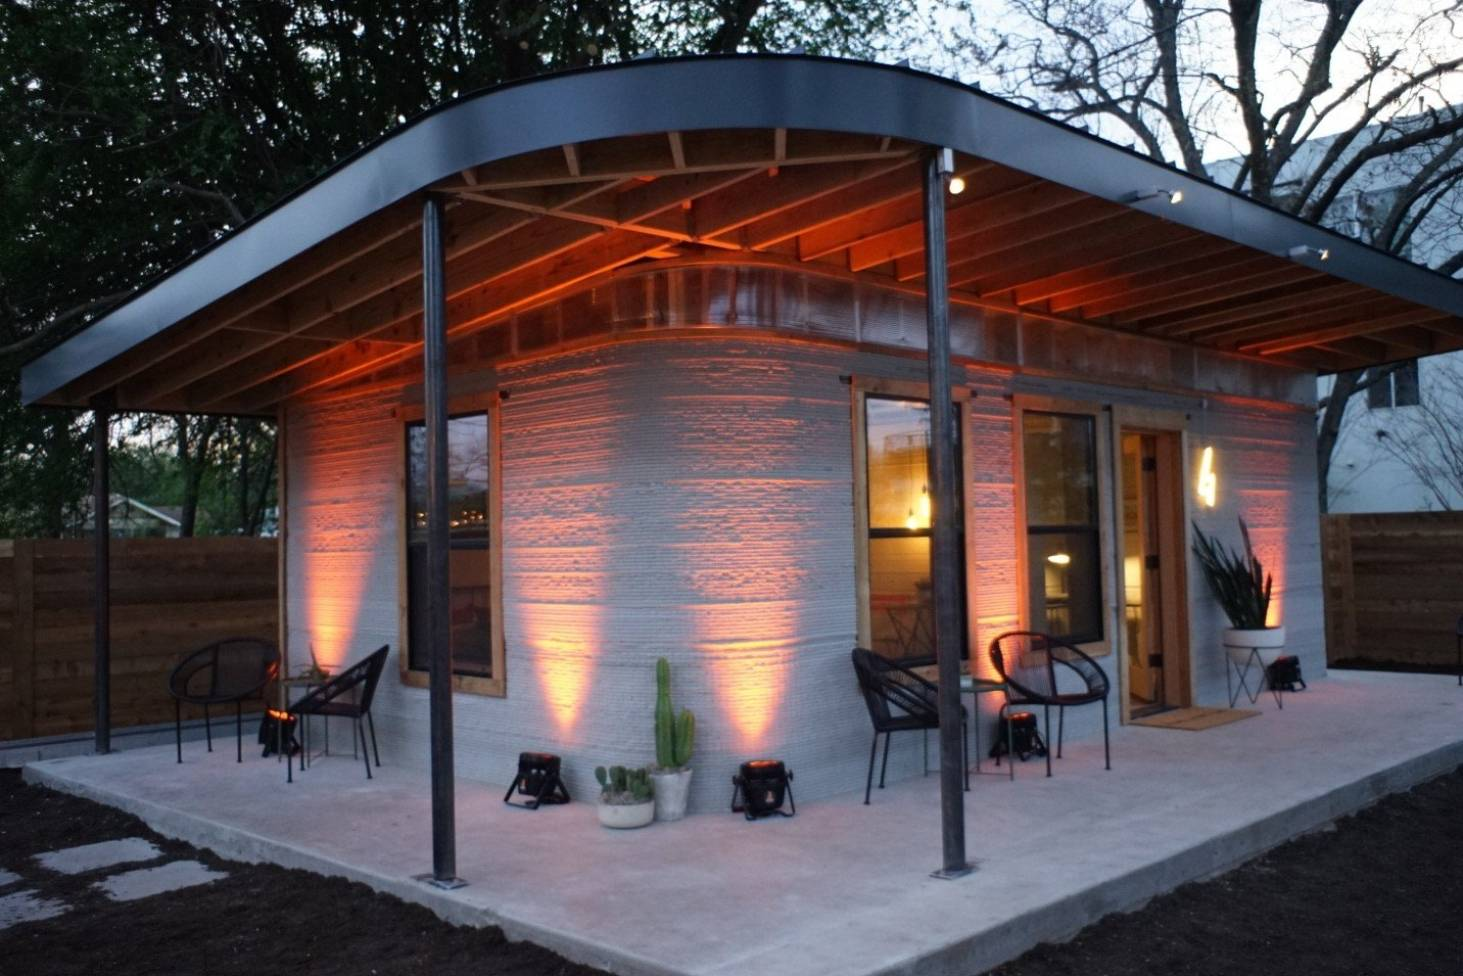 This 3d printed home could revolutionise low cost housing